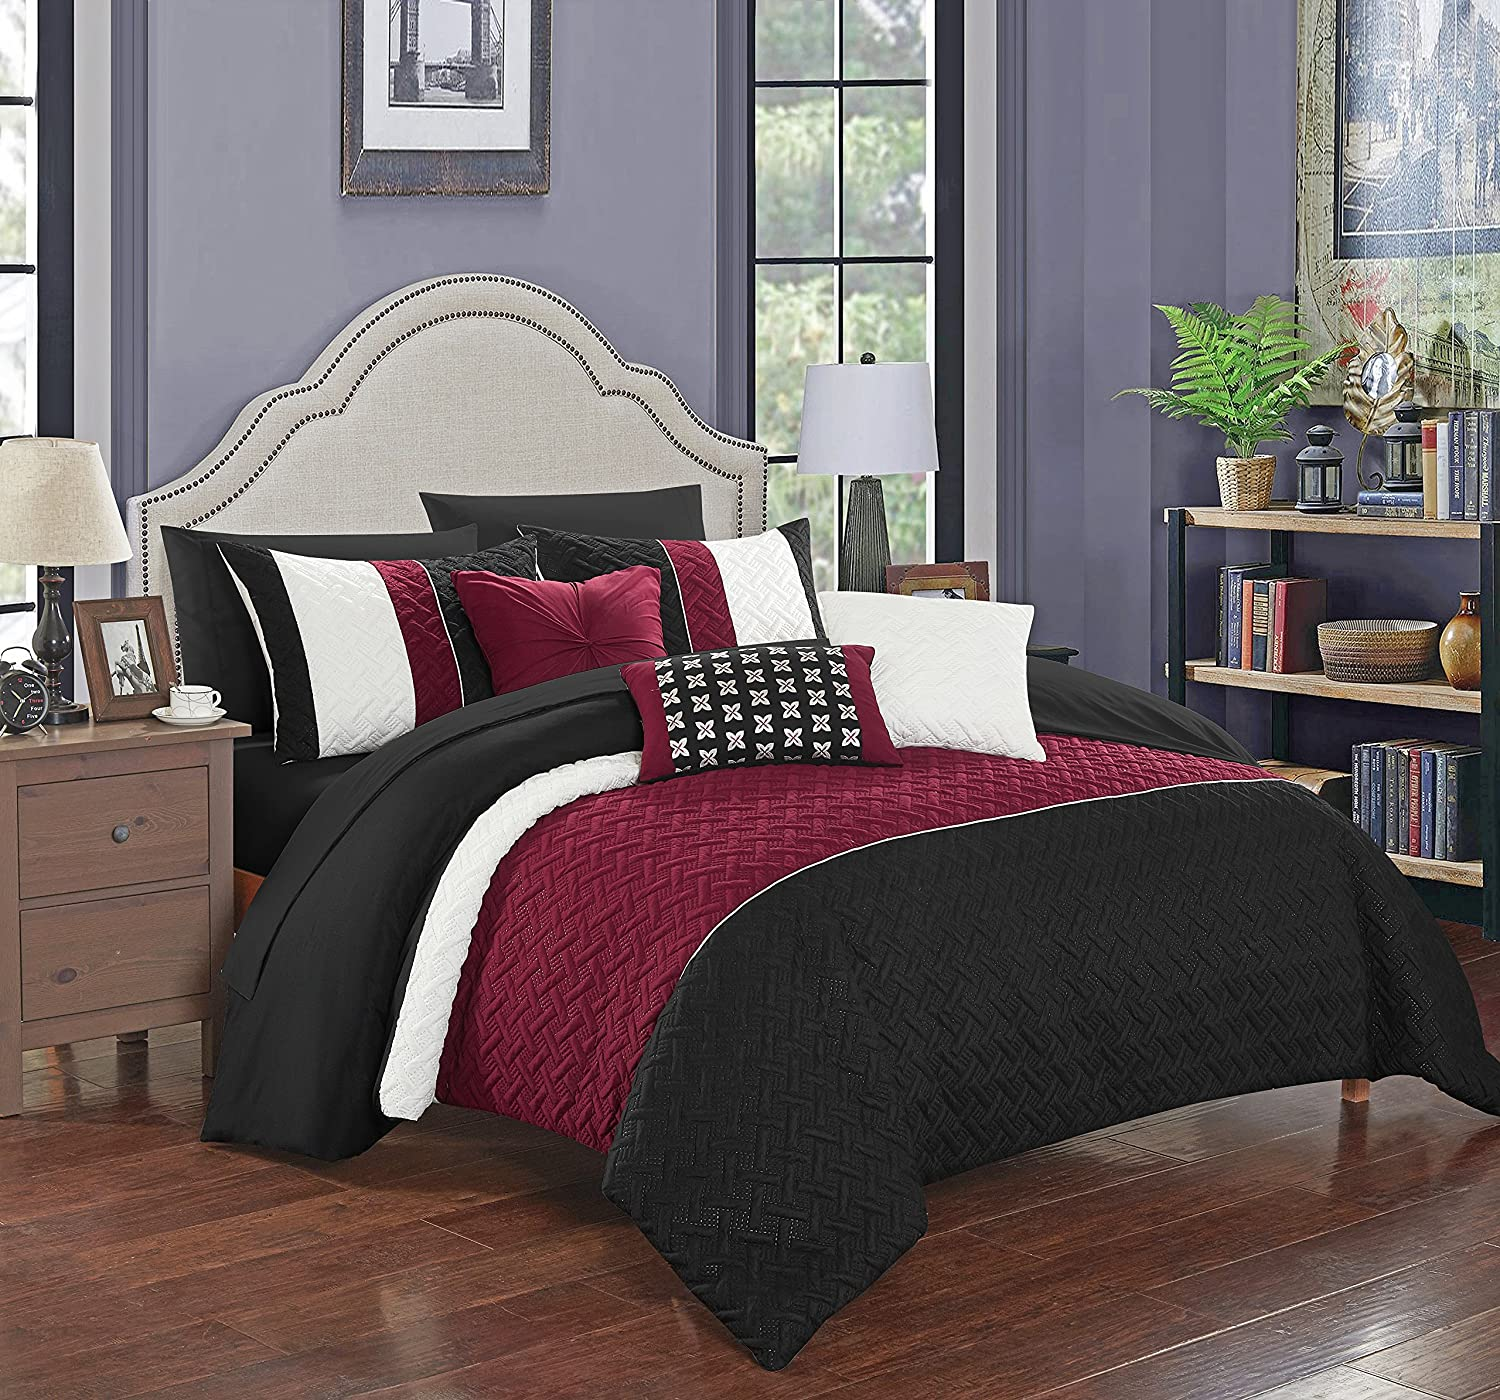 Chic Home Osnat 10 Piece Comforter Set Color Block Quilted Embroidered Design Bed in a Bag Bedding – Sheets Decorative Pillows Shams Included King Black